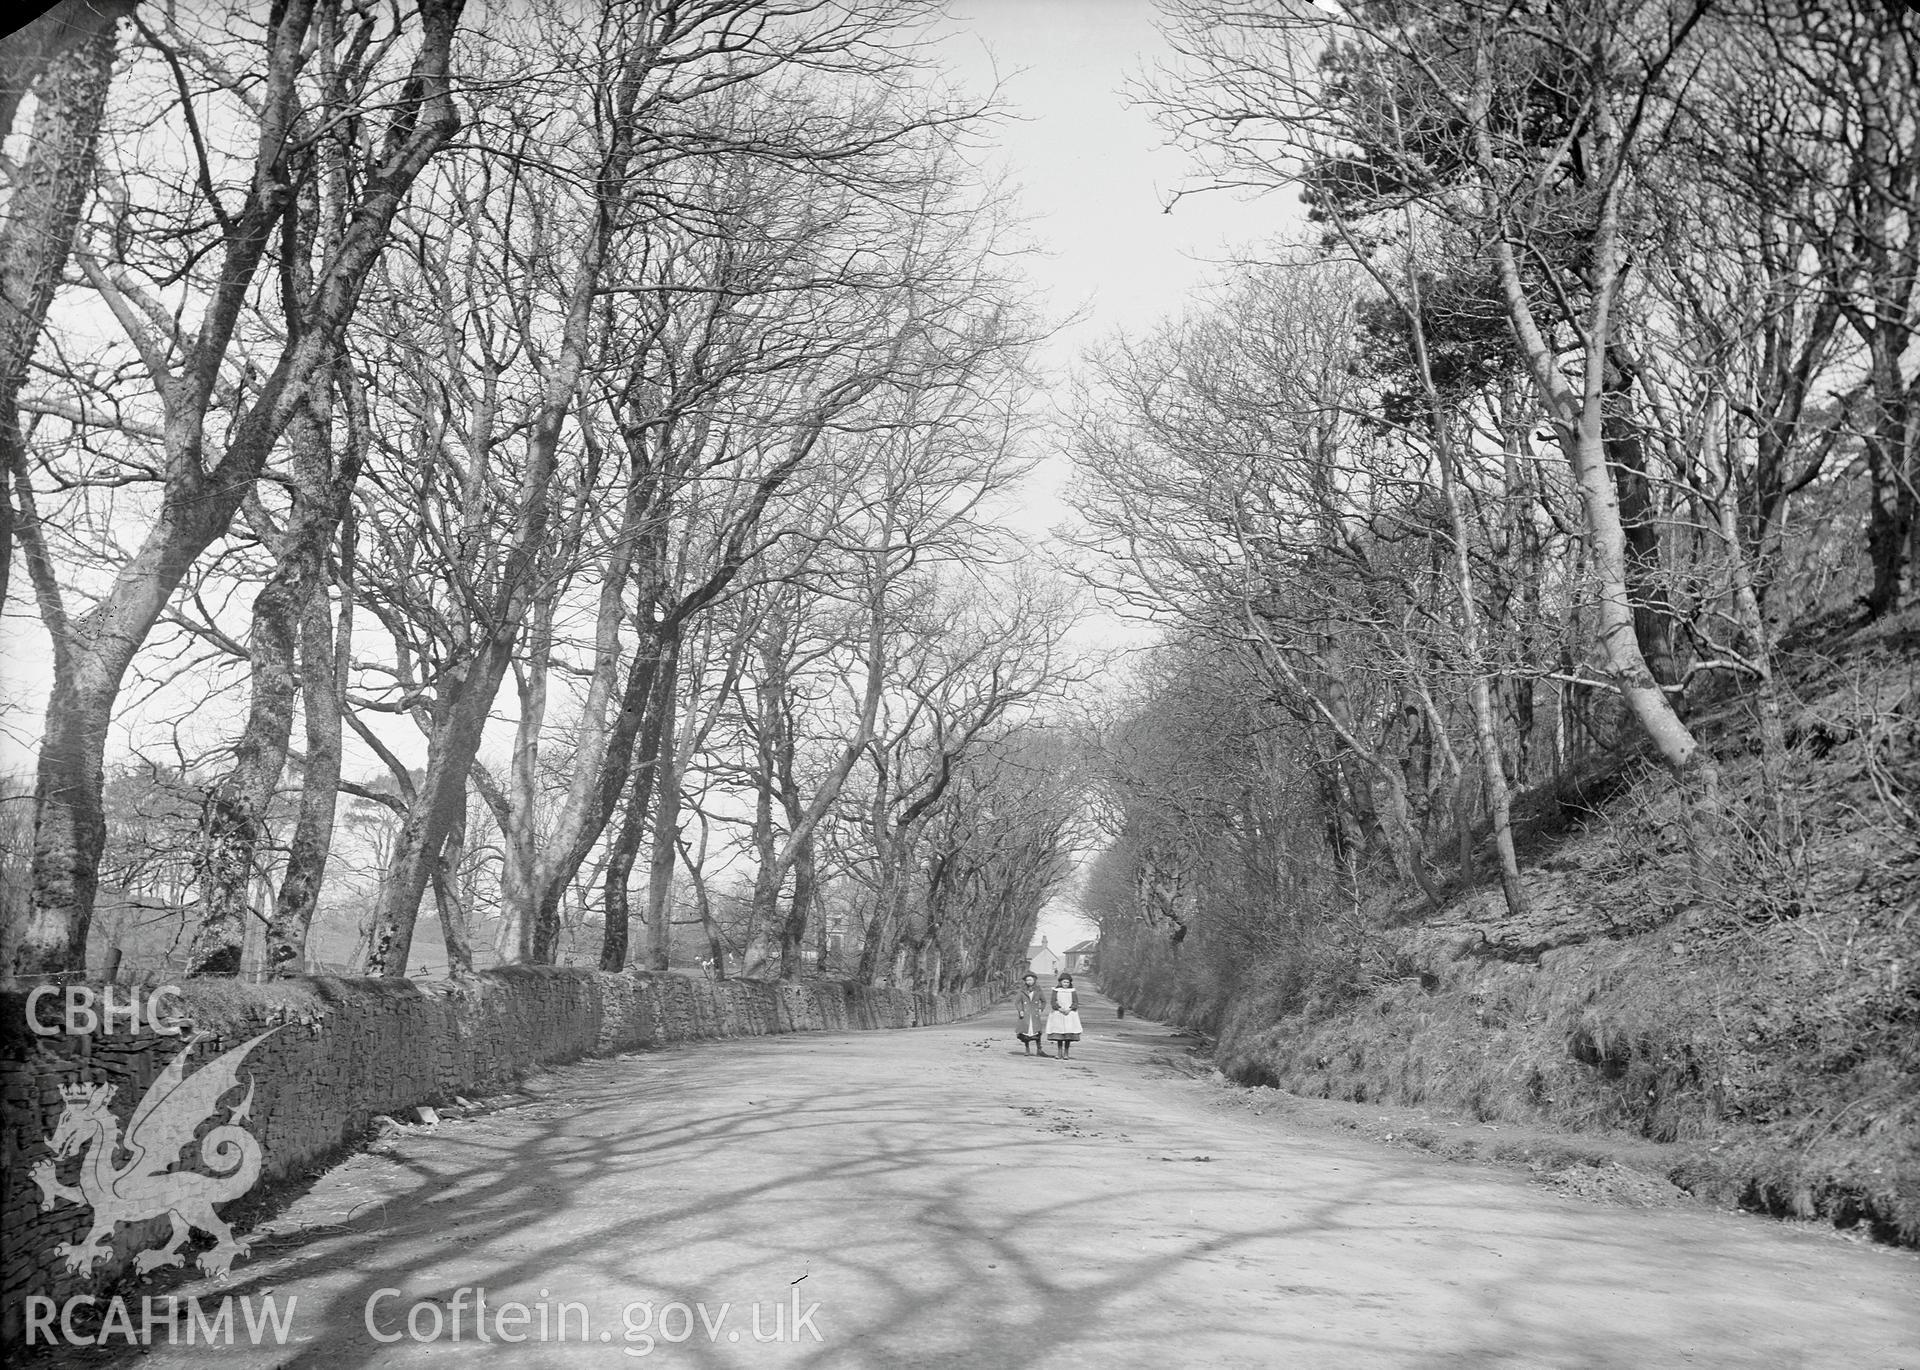 Black and white image dating from c.1910 showing the A487 at Southgate,  taken by Emile T. Evans.